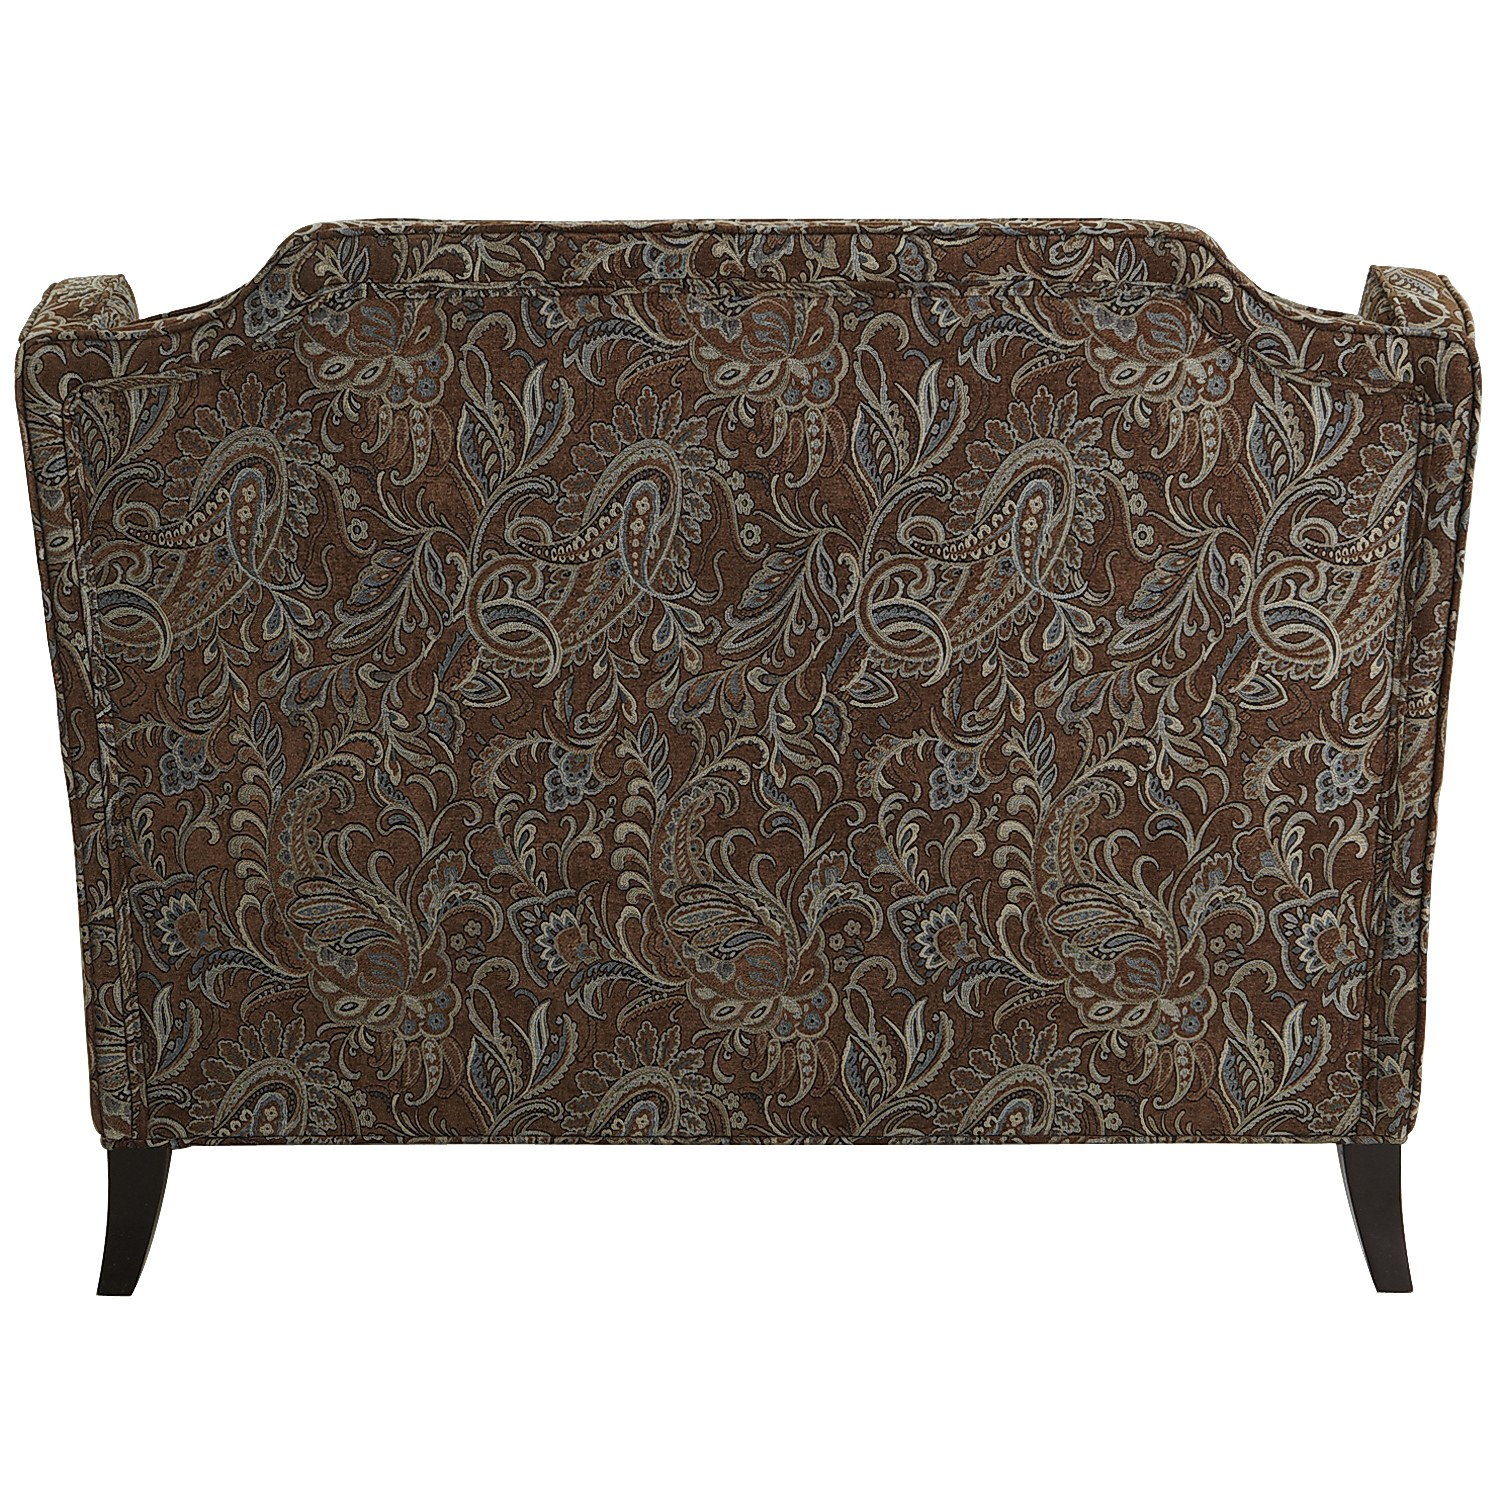 variation thumbnail of Headington Loveseat - Paisley Brown